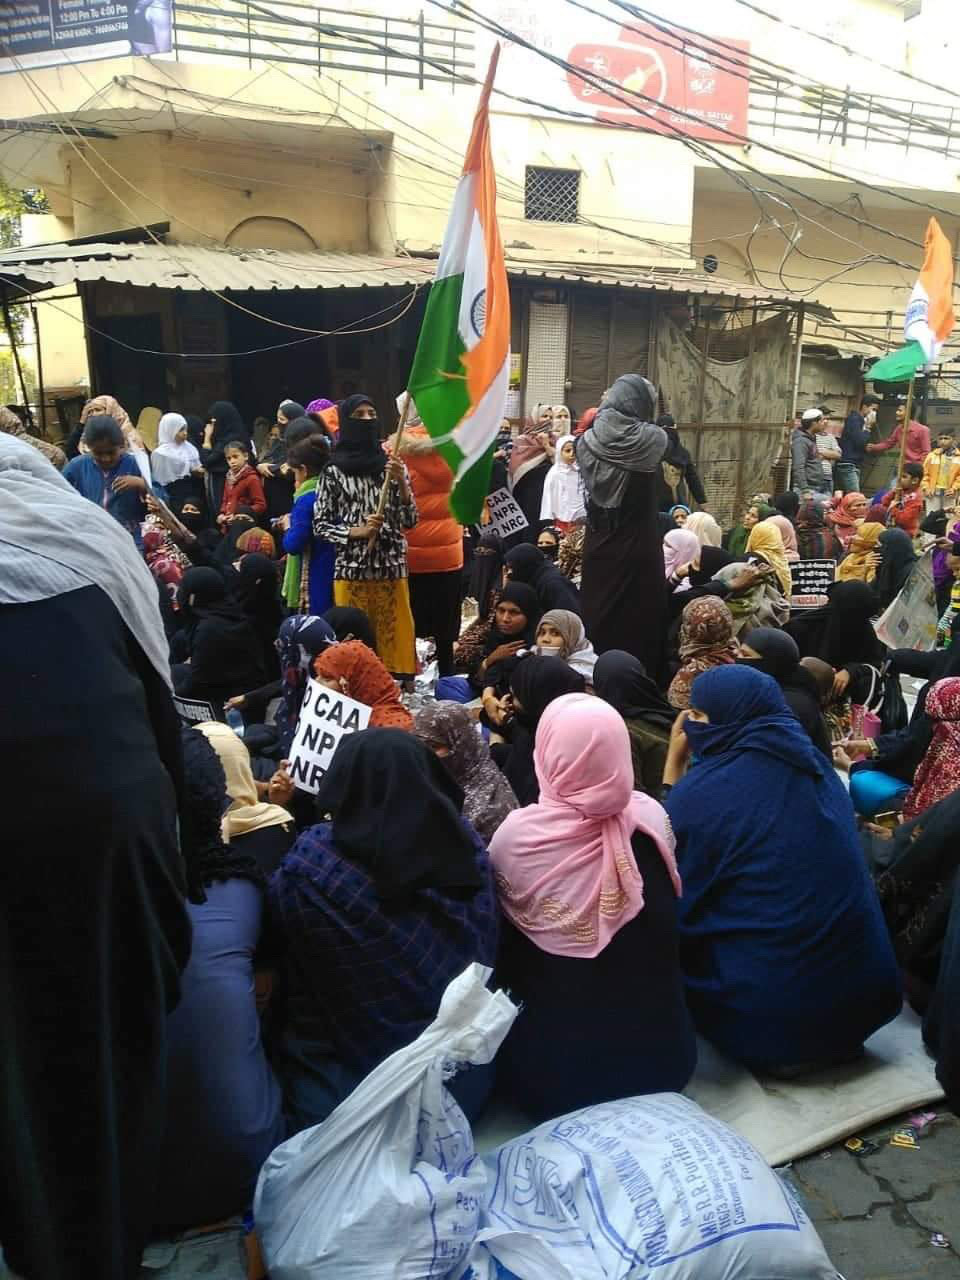 Police Brutality in Kanpur: Anti-CAA Protesters Face Lathis, Threatened with Sedition Charge